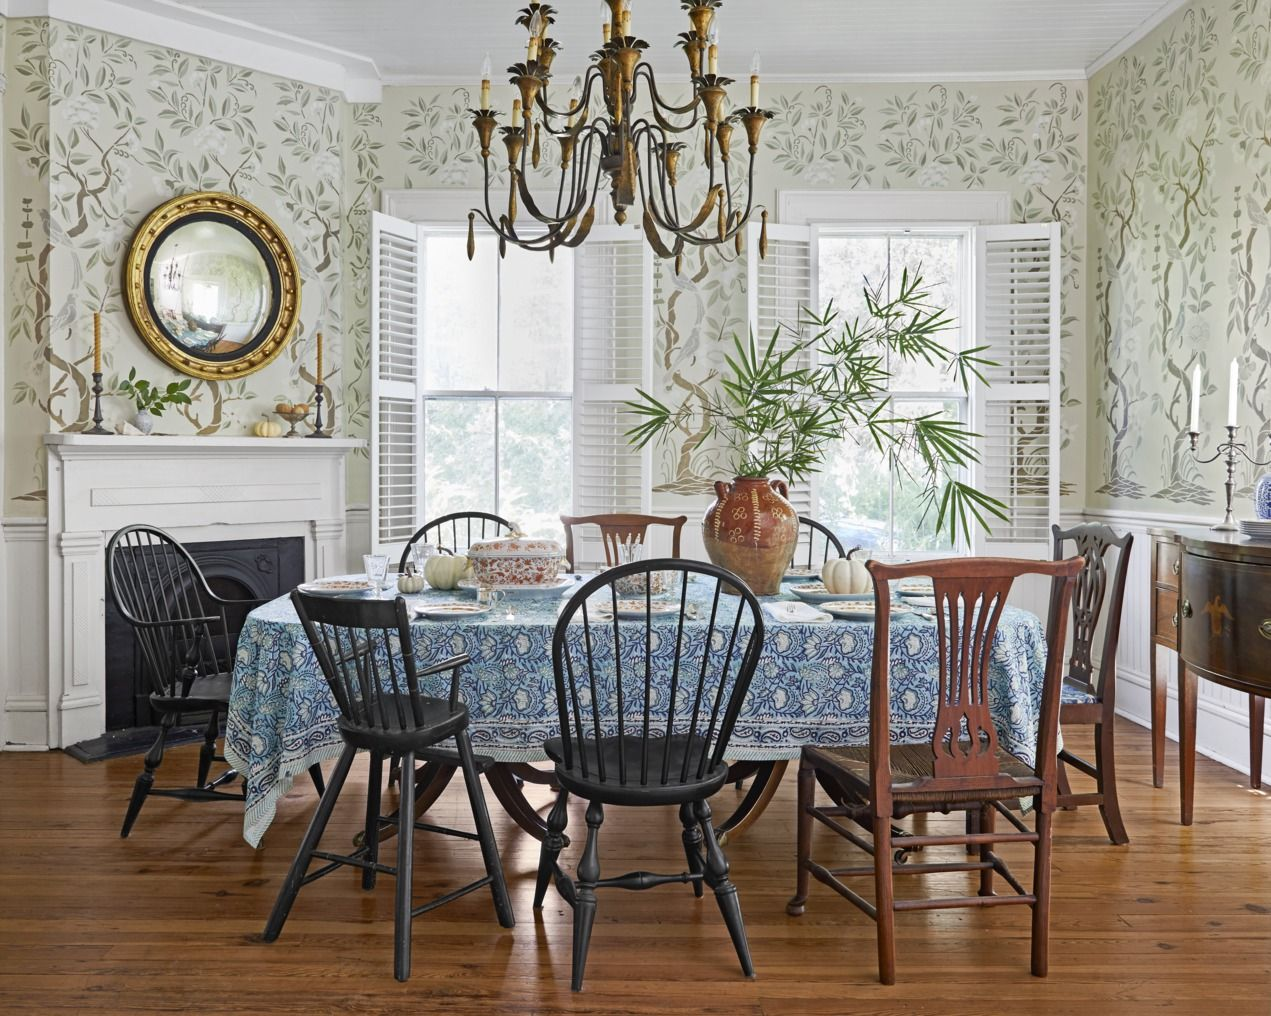 23 Best Dining Room Decorating Ideas - Country Dining Room Decor